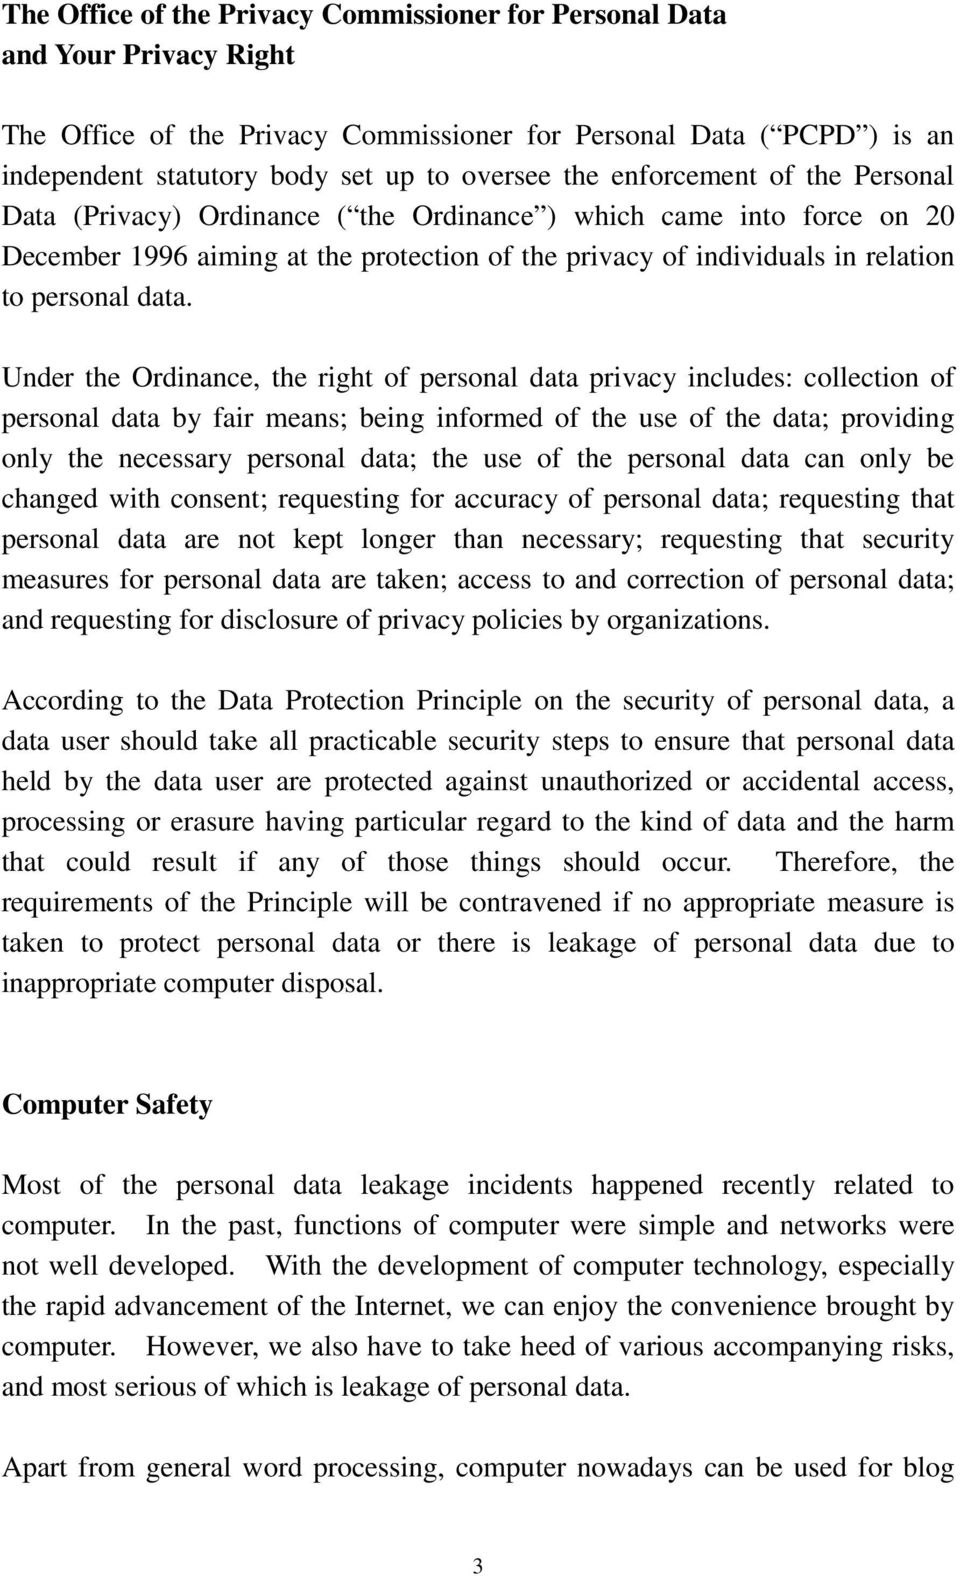 data. Under the Ordinance, the right of personal data privacy includes: collection of personal data by fair means; being informed of the use of the data; providing only the necessary personal data;